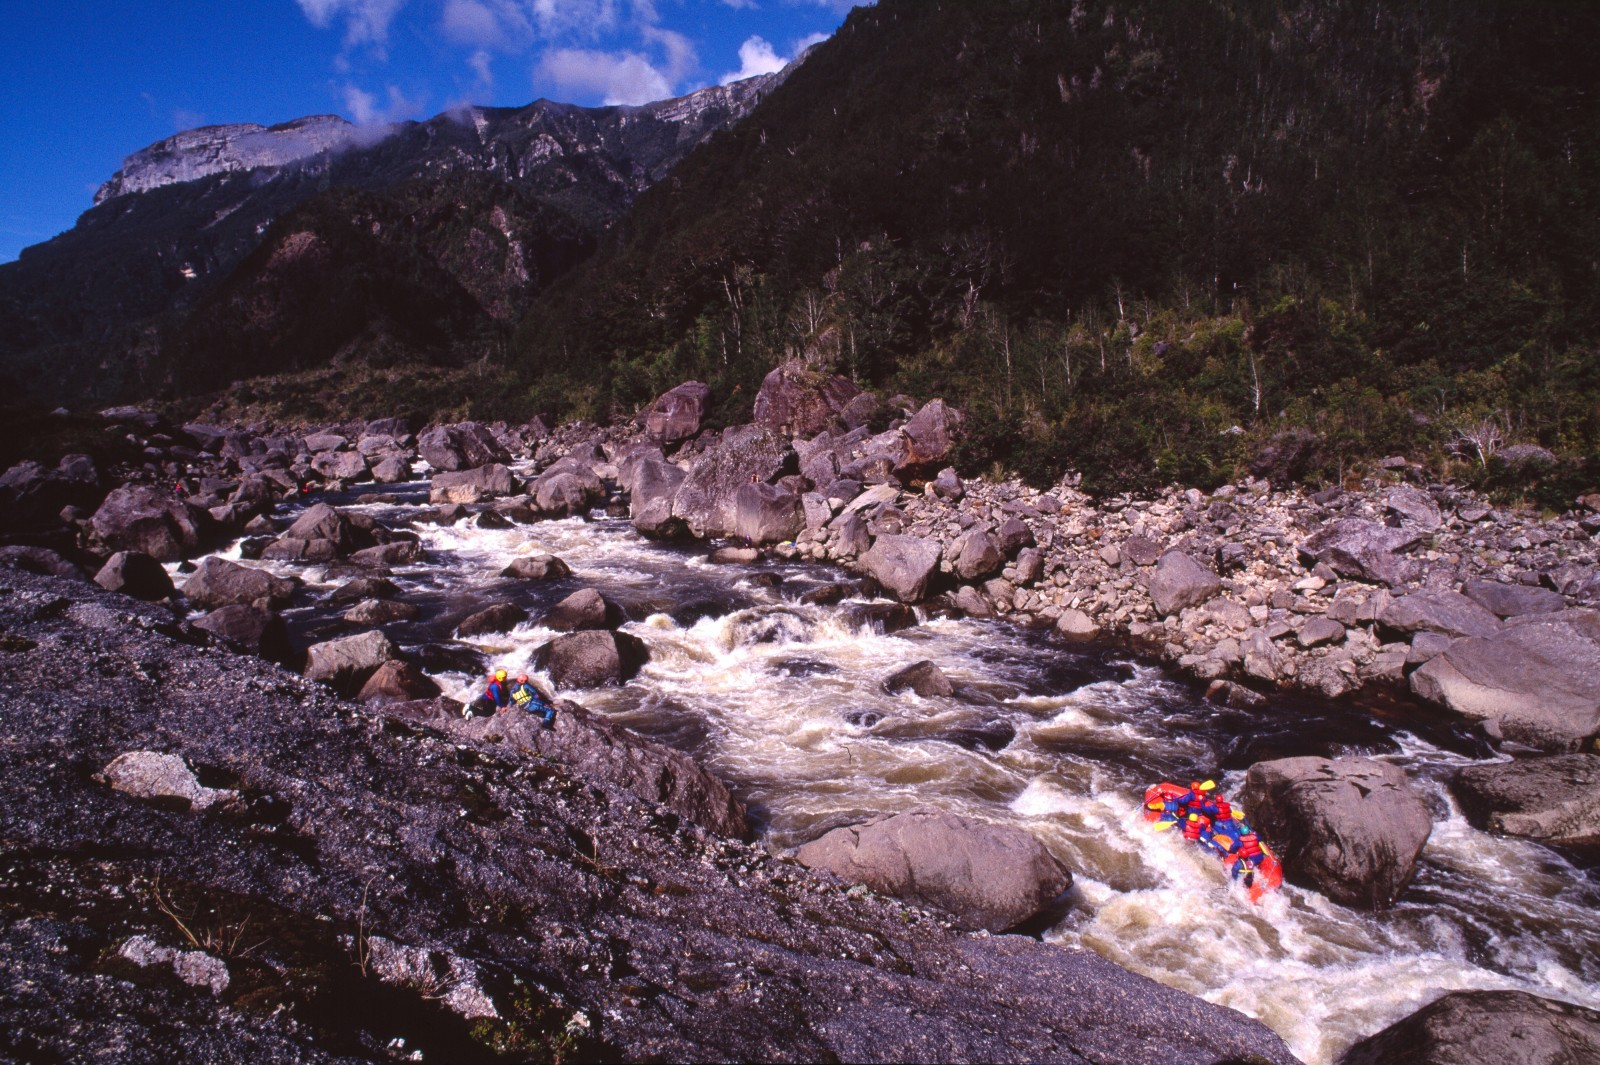 Boulders shaken from the ramparts of Garibald Ridge by the 1929 Murchison earthquake keep adrenalin flowing faster tan water for rafters braving the wild Karamea River.